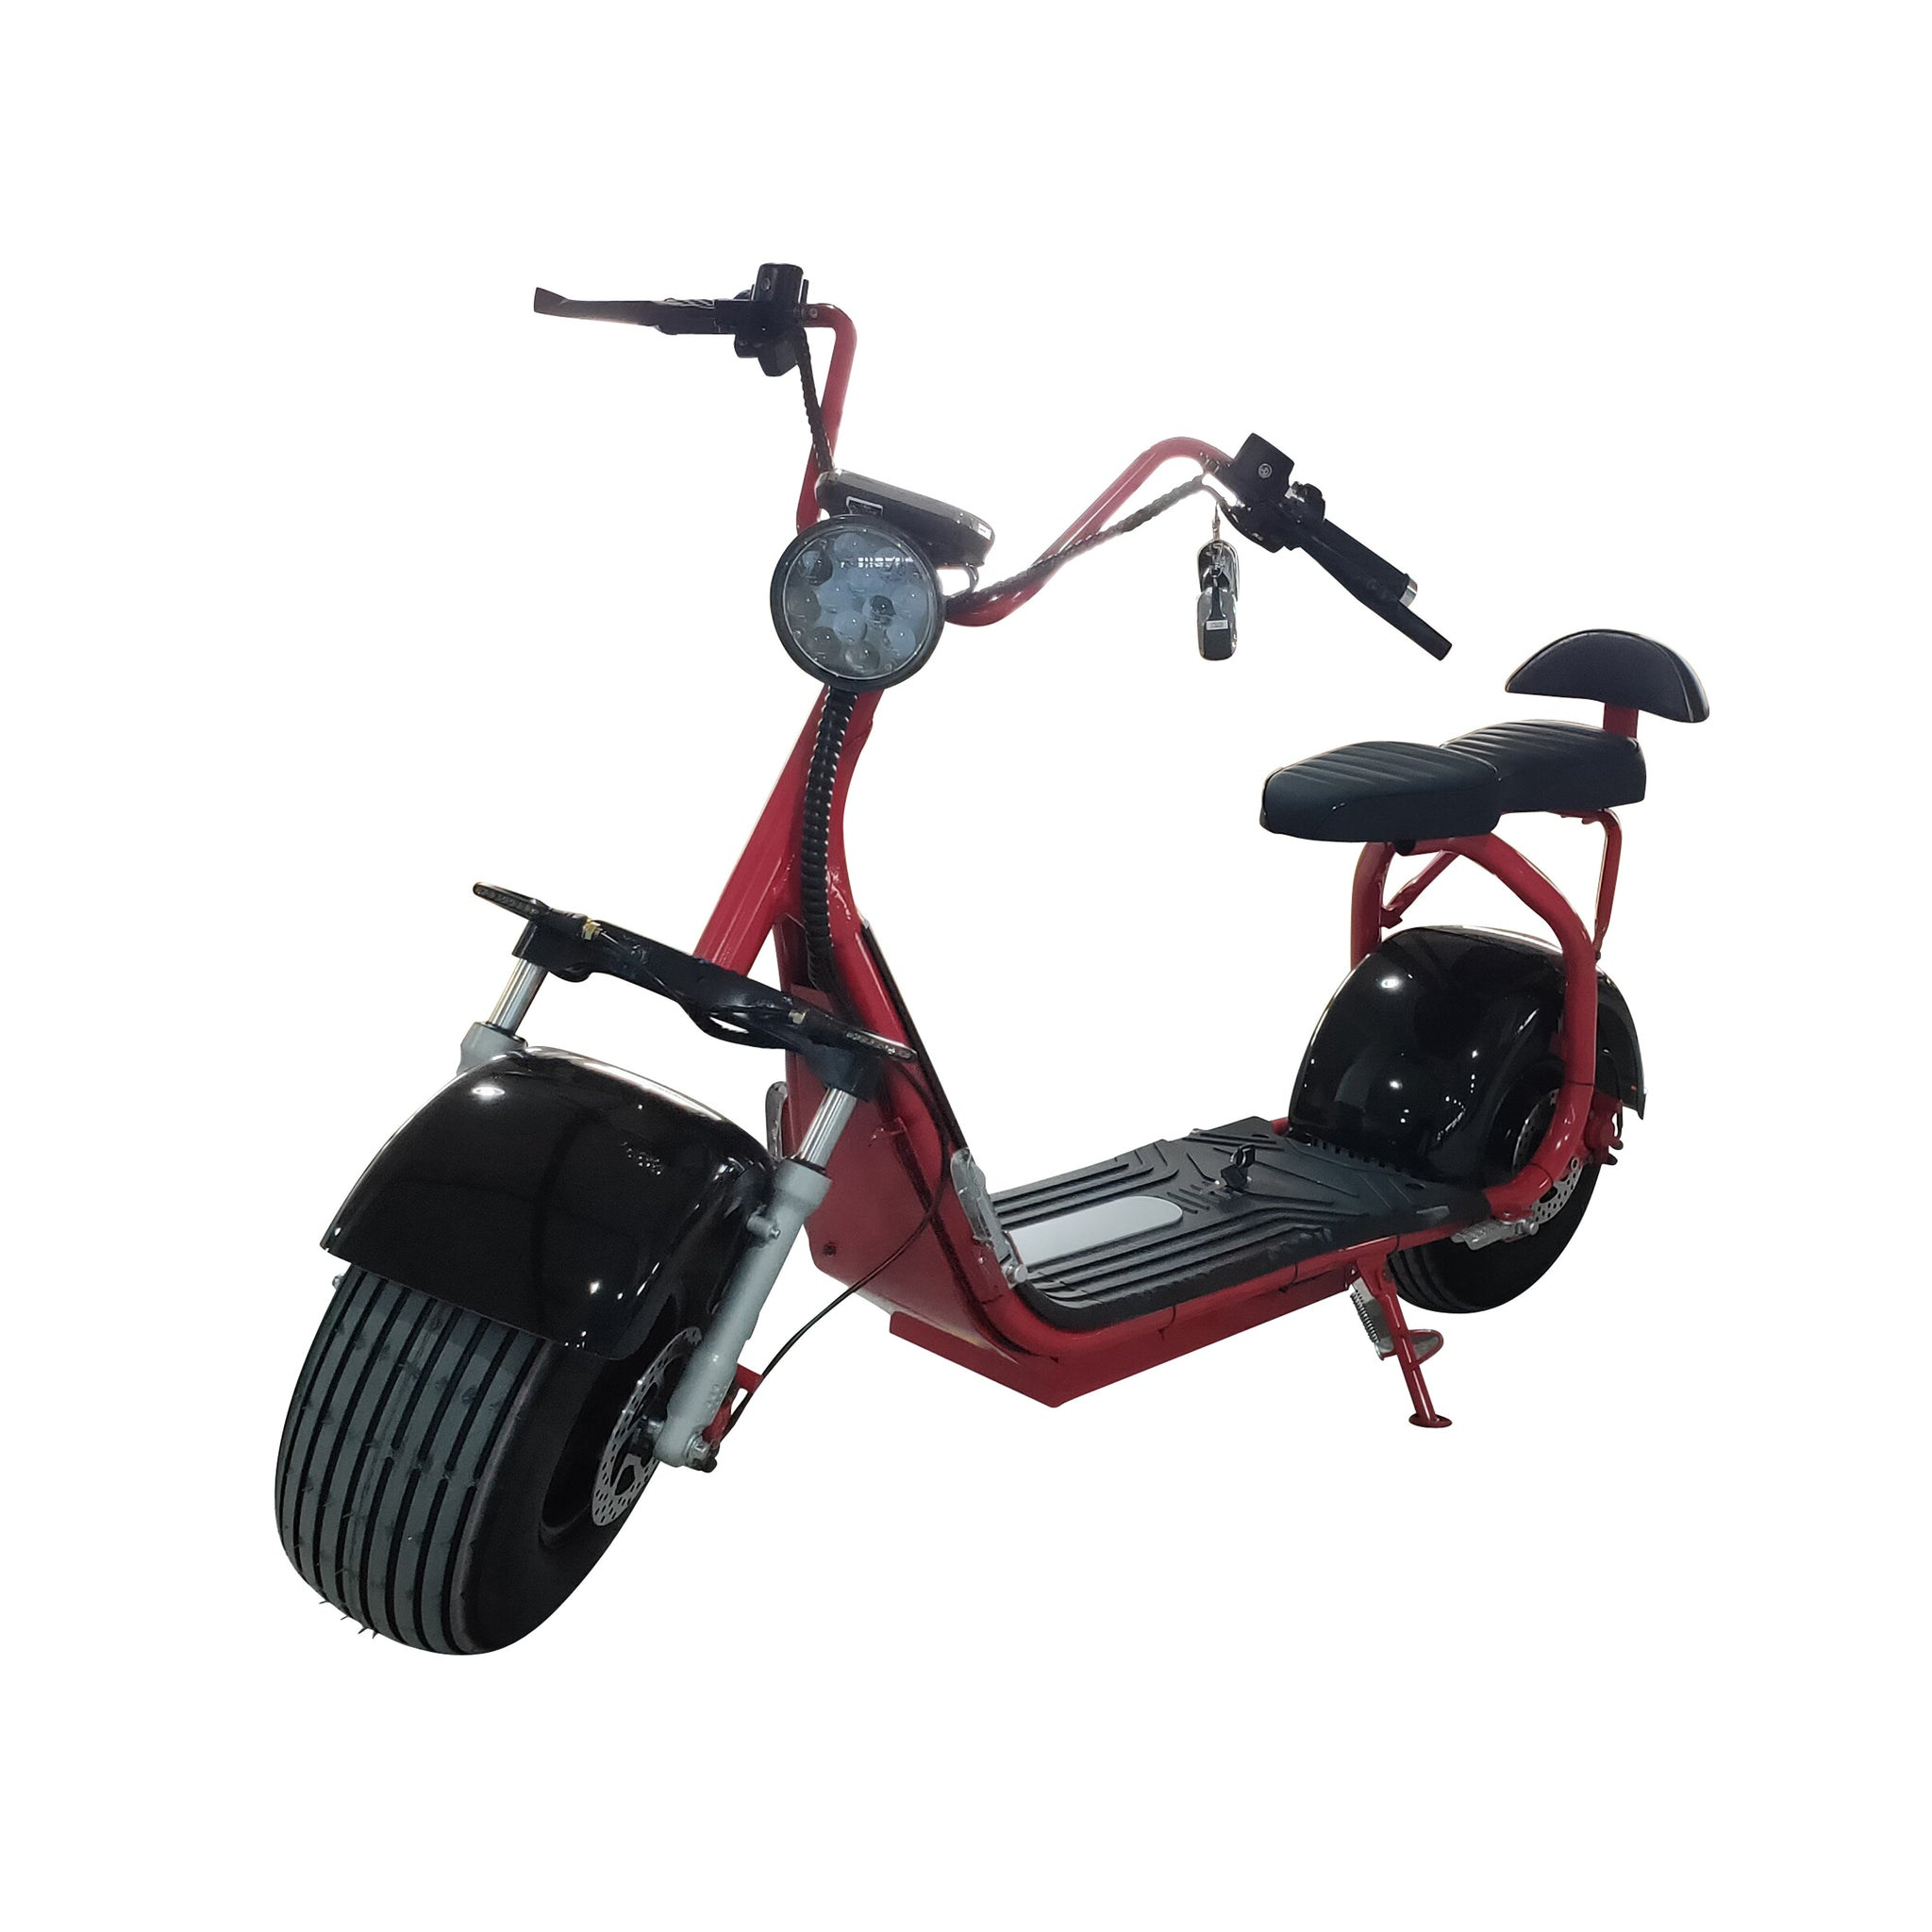 Fat Cub - Electric Fat Tire Scooter Moped